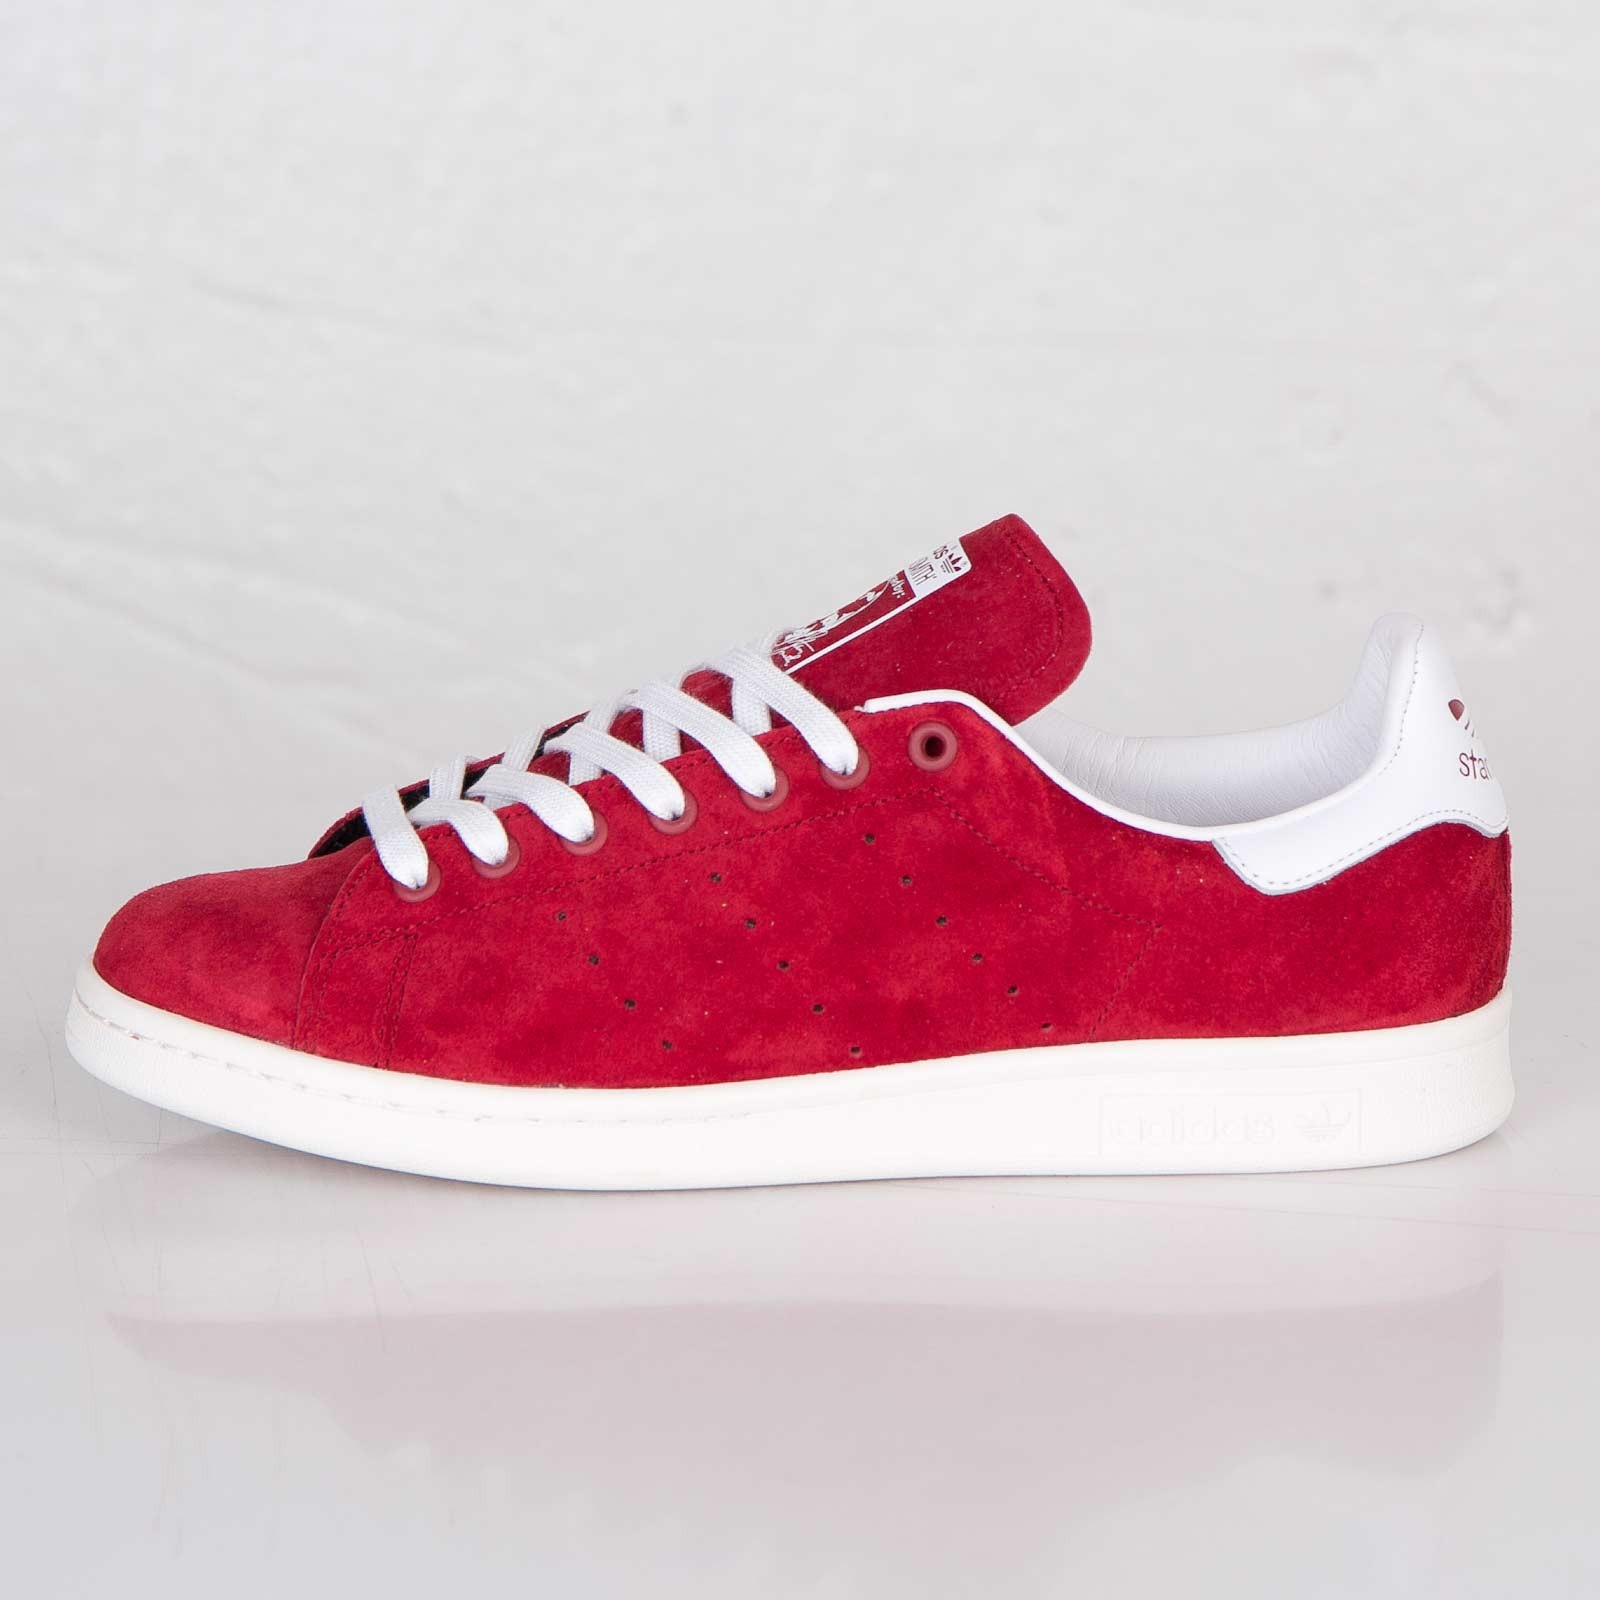 meilleures baskets f1f8e 9b9ed adidas Stan Smith - D67366 - Sneakersnstuff | sneakers ...